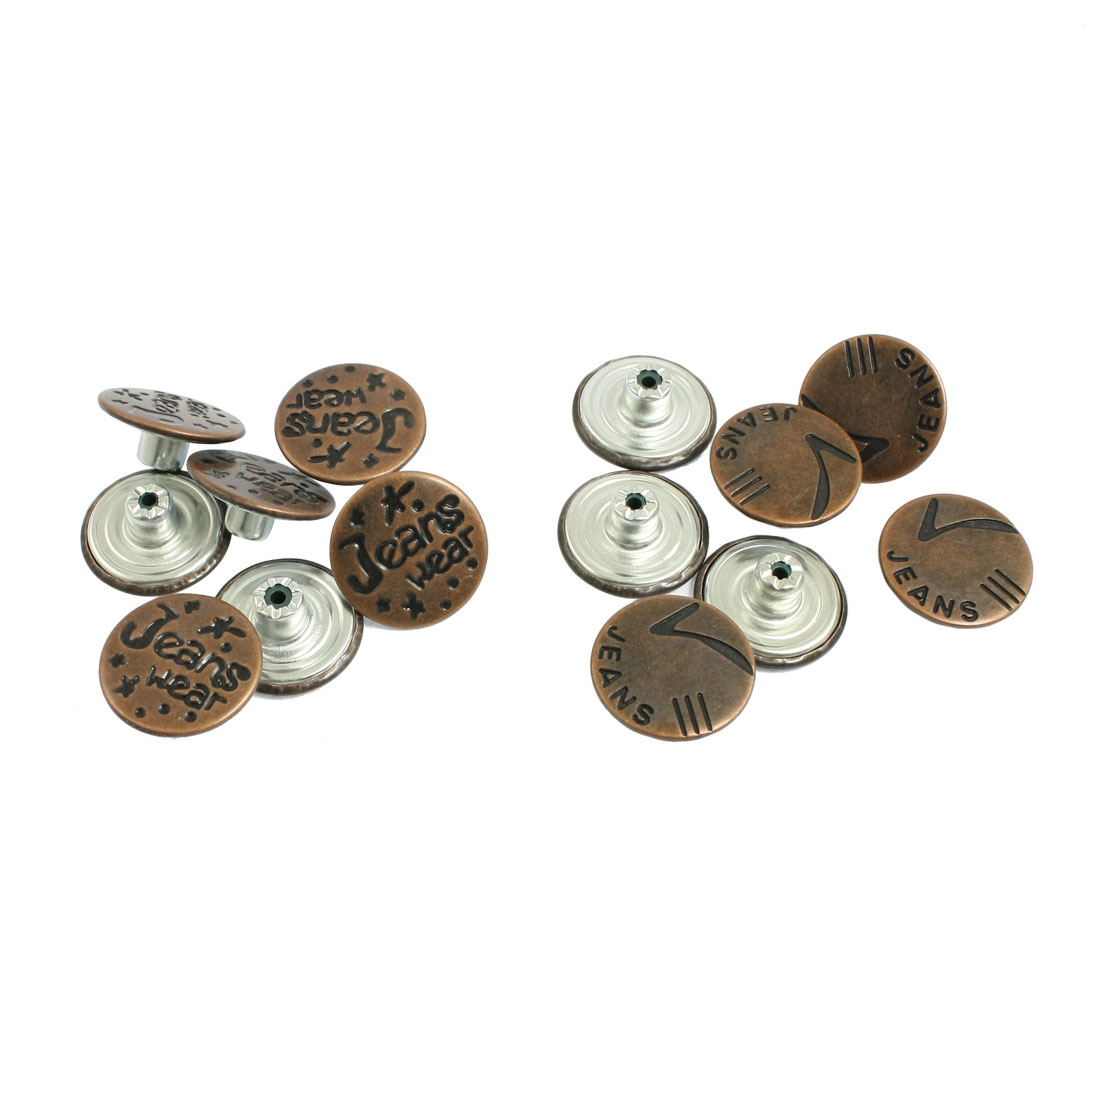 14 Pcs Denim Jacket Jeans Metal Tack Buttons Replacement Copper Tone